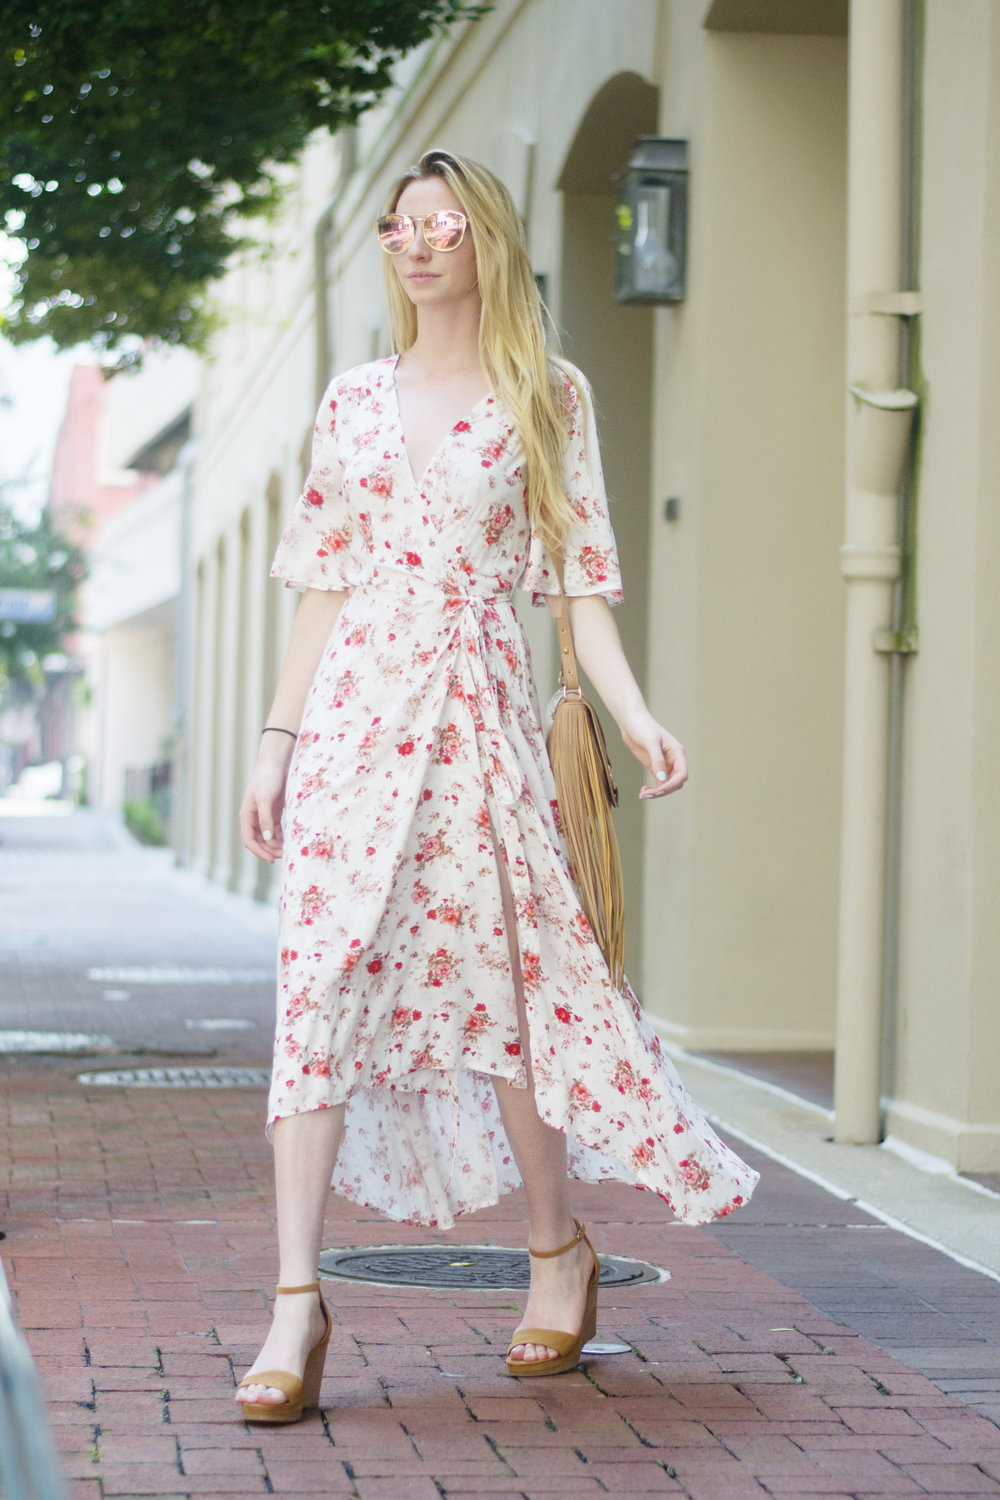 Floral Wrap Dress (via Chic Now)